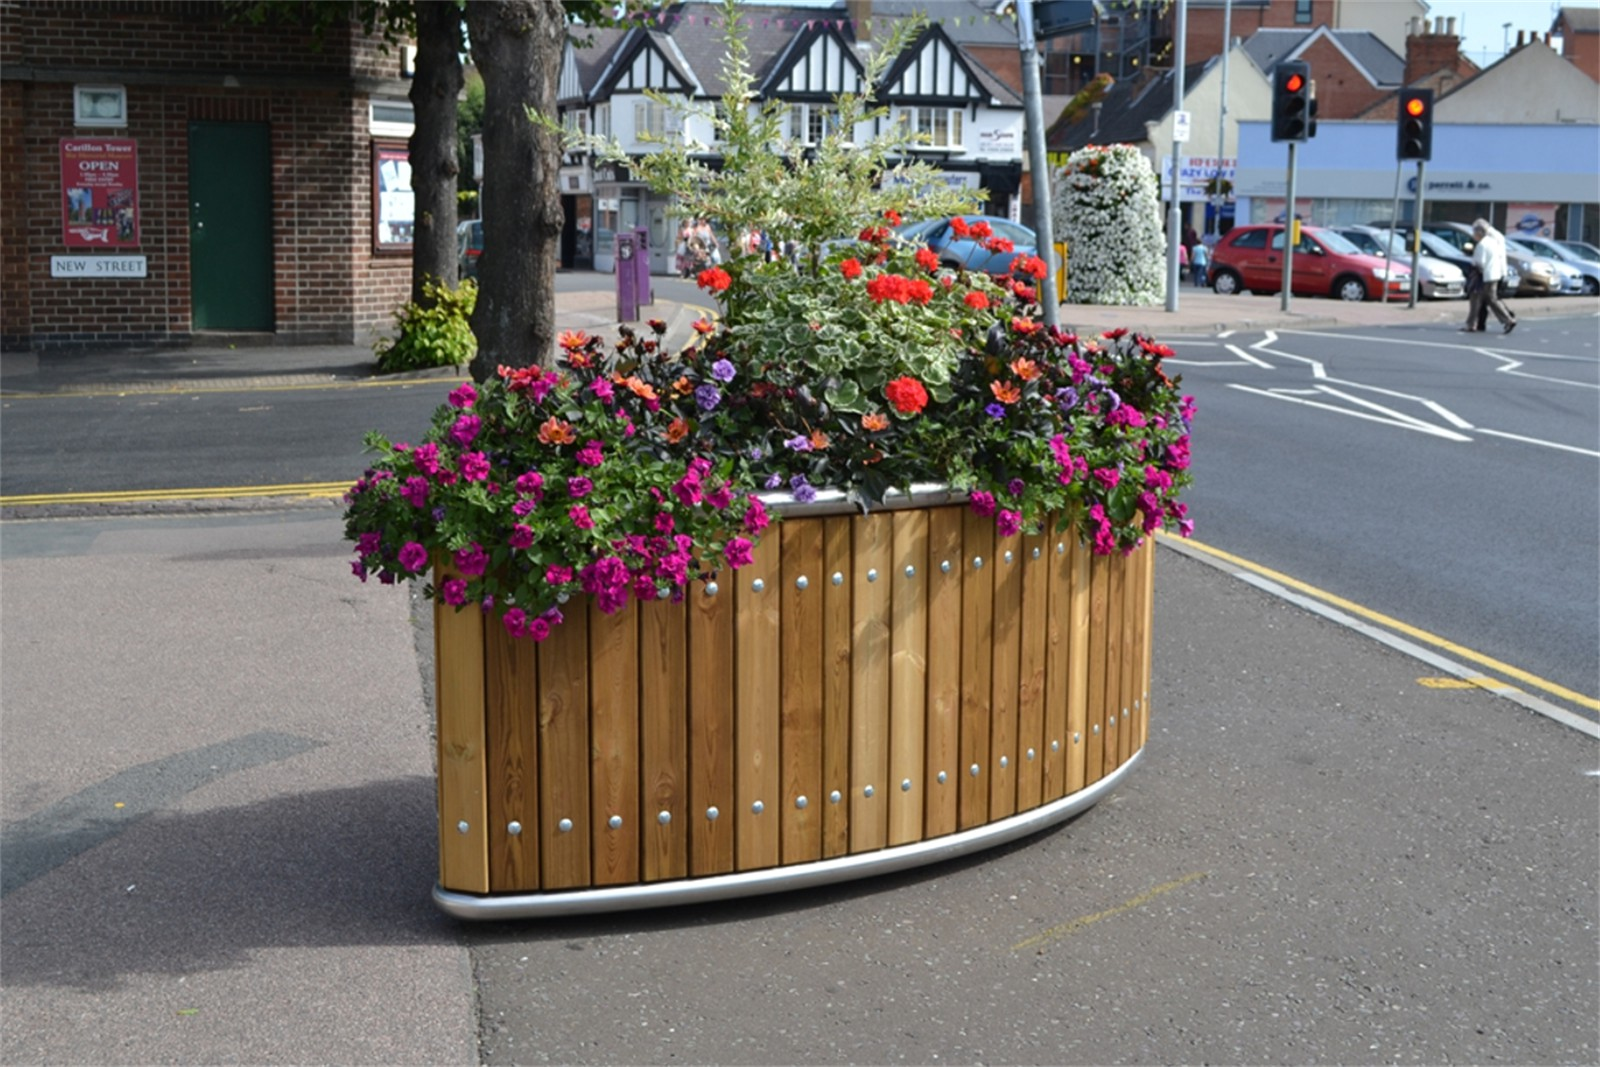 47p11 - Stockport elliptical planter